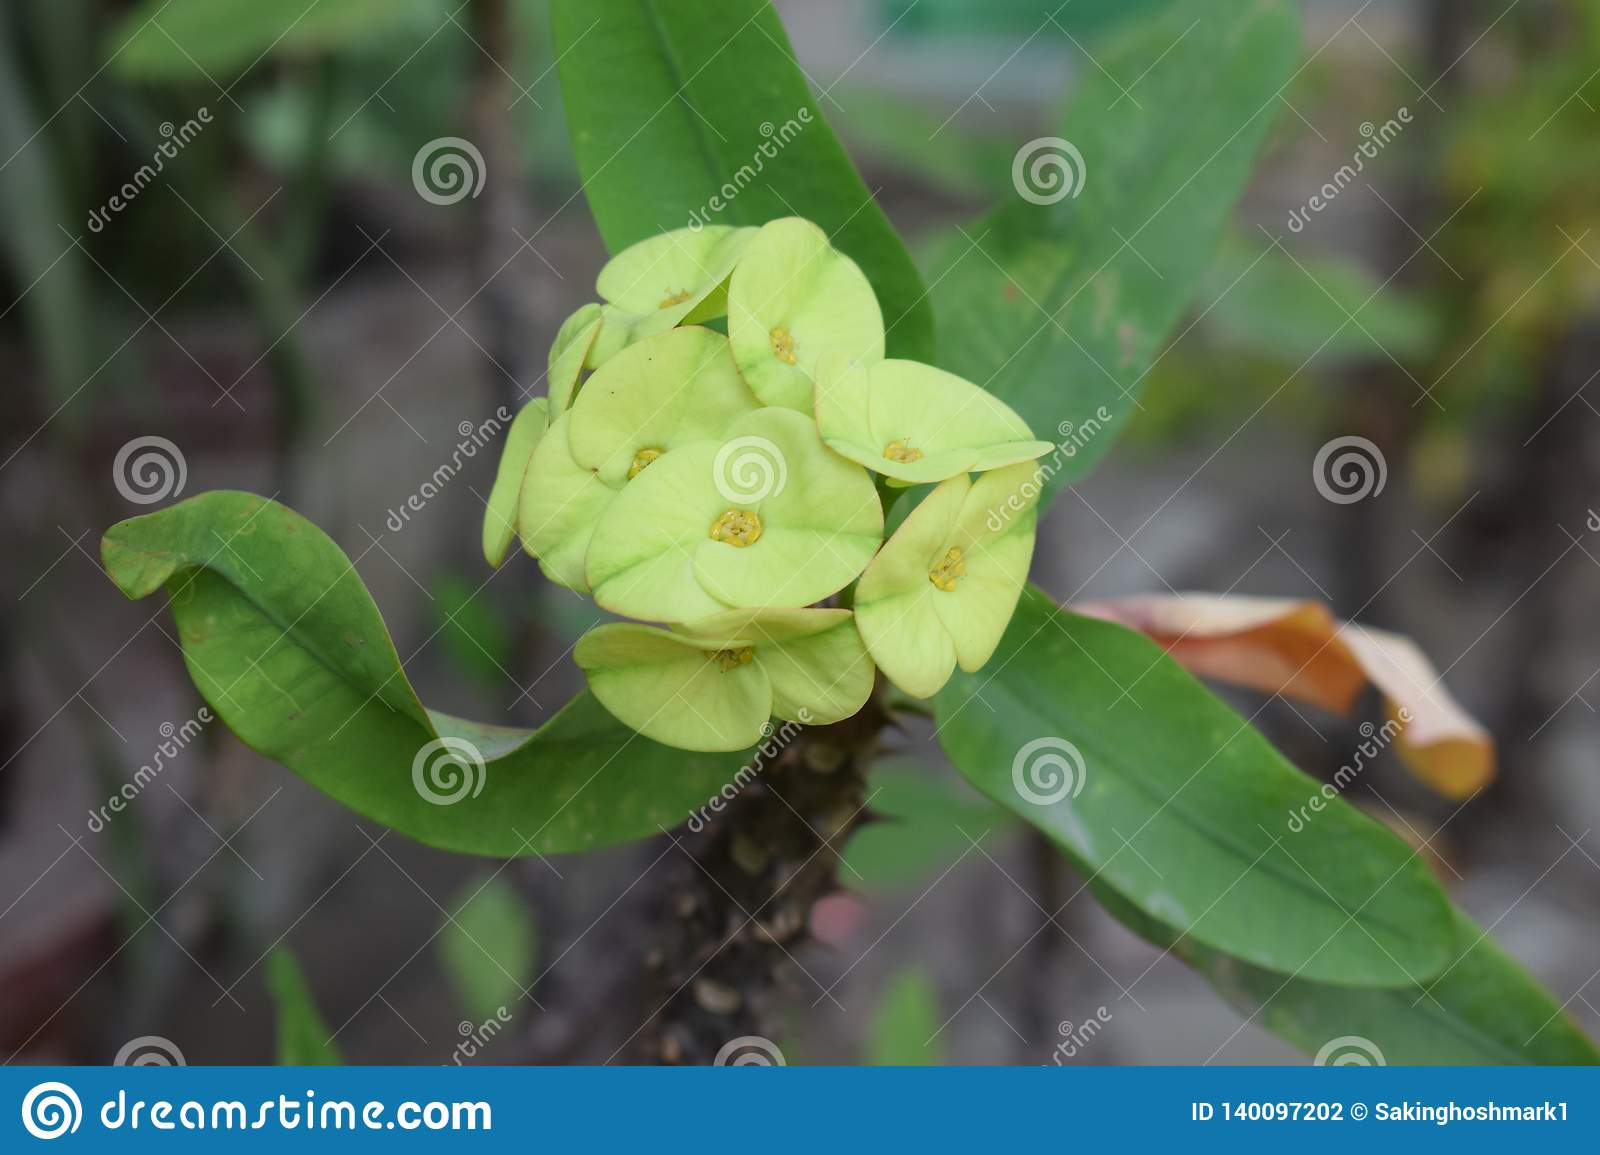 Exotic Greenish yellow flowers blossomed in a thorny plant